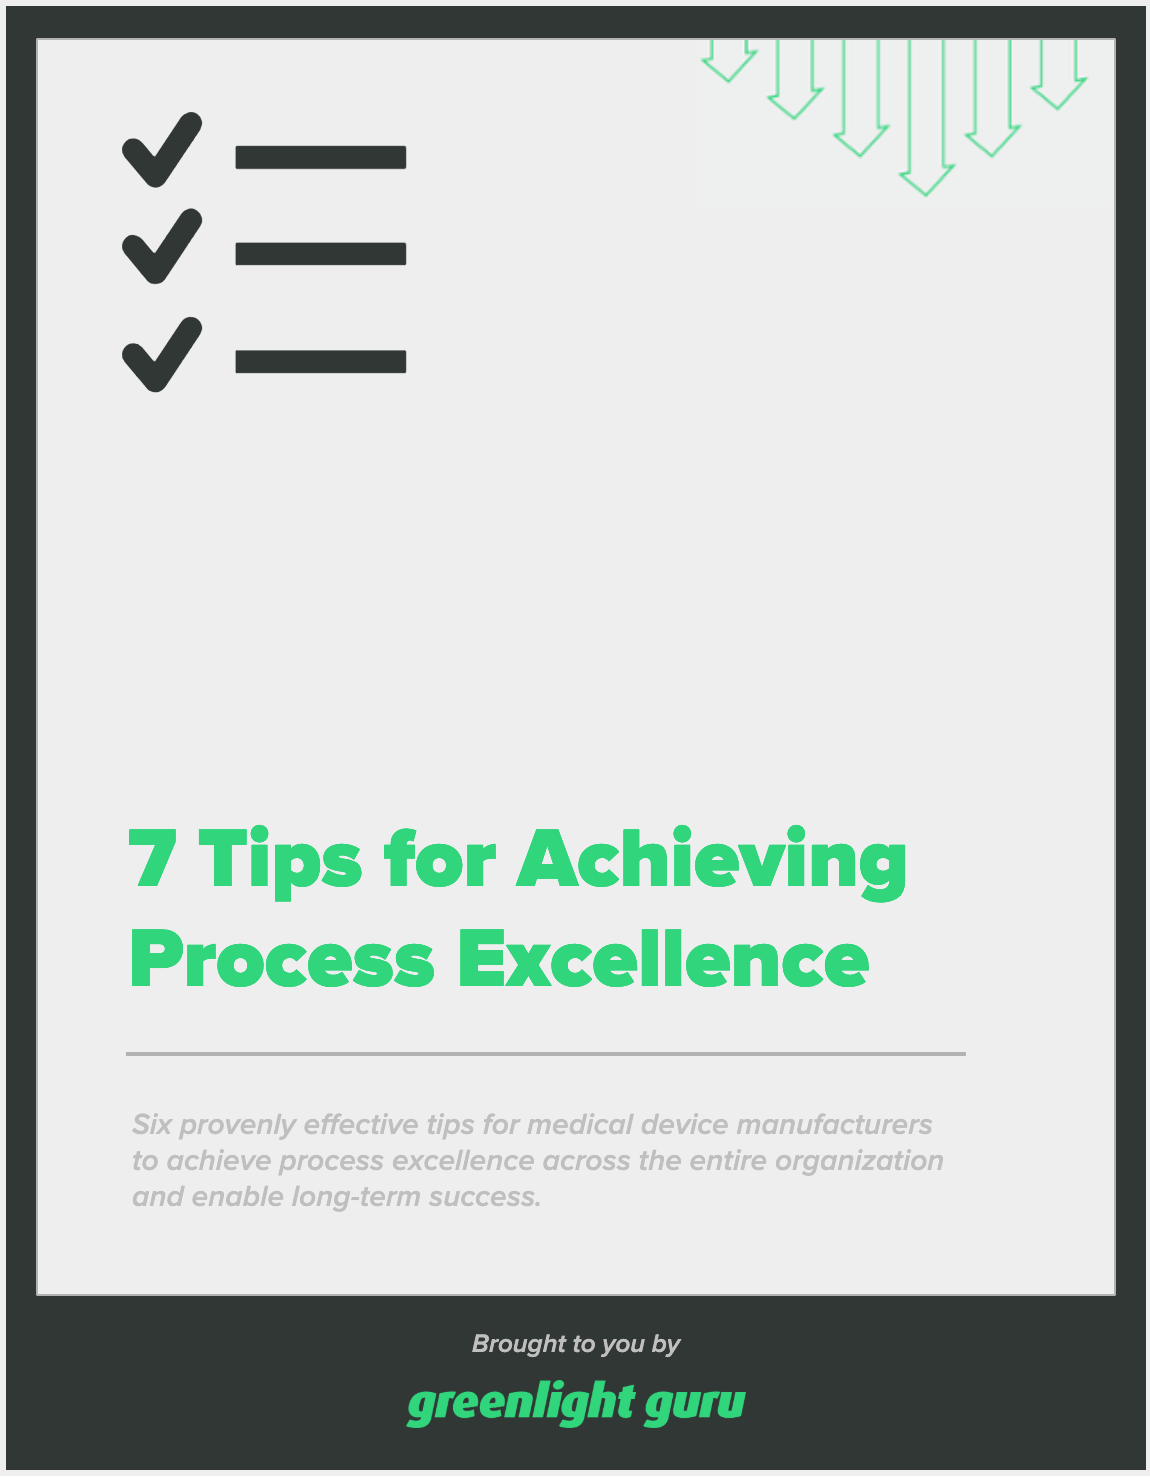 7 tips for achieving process excellence